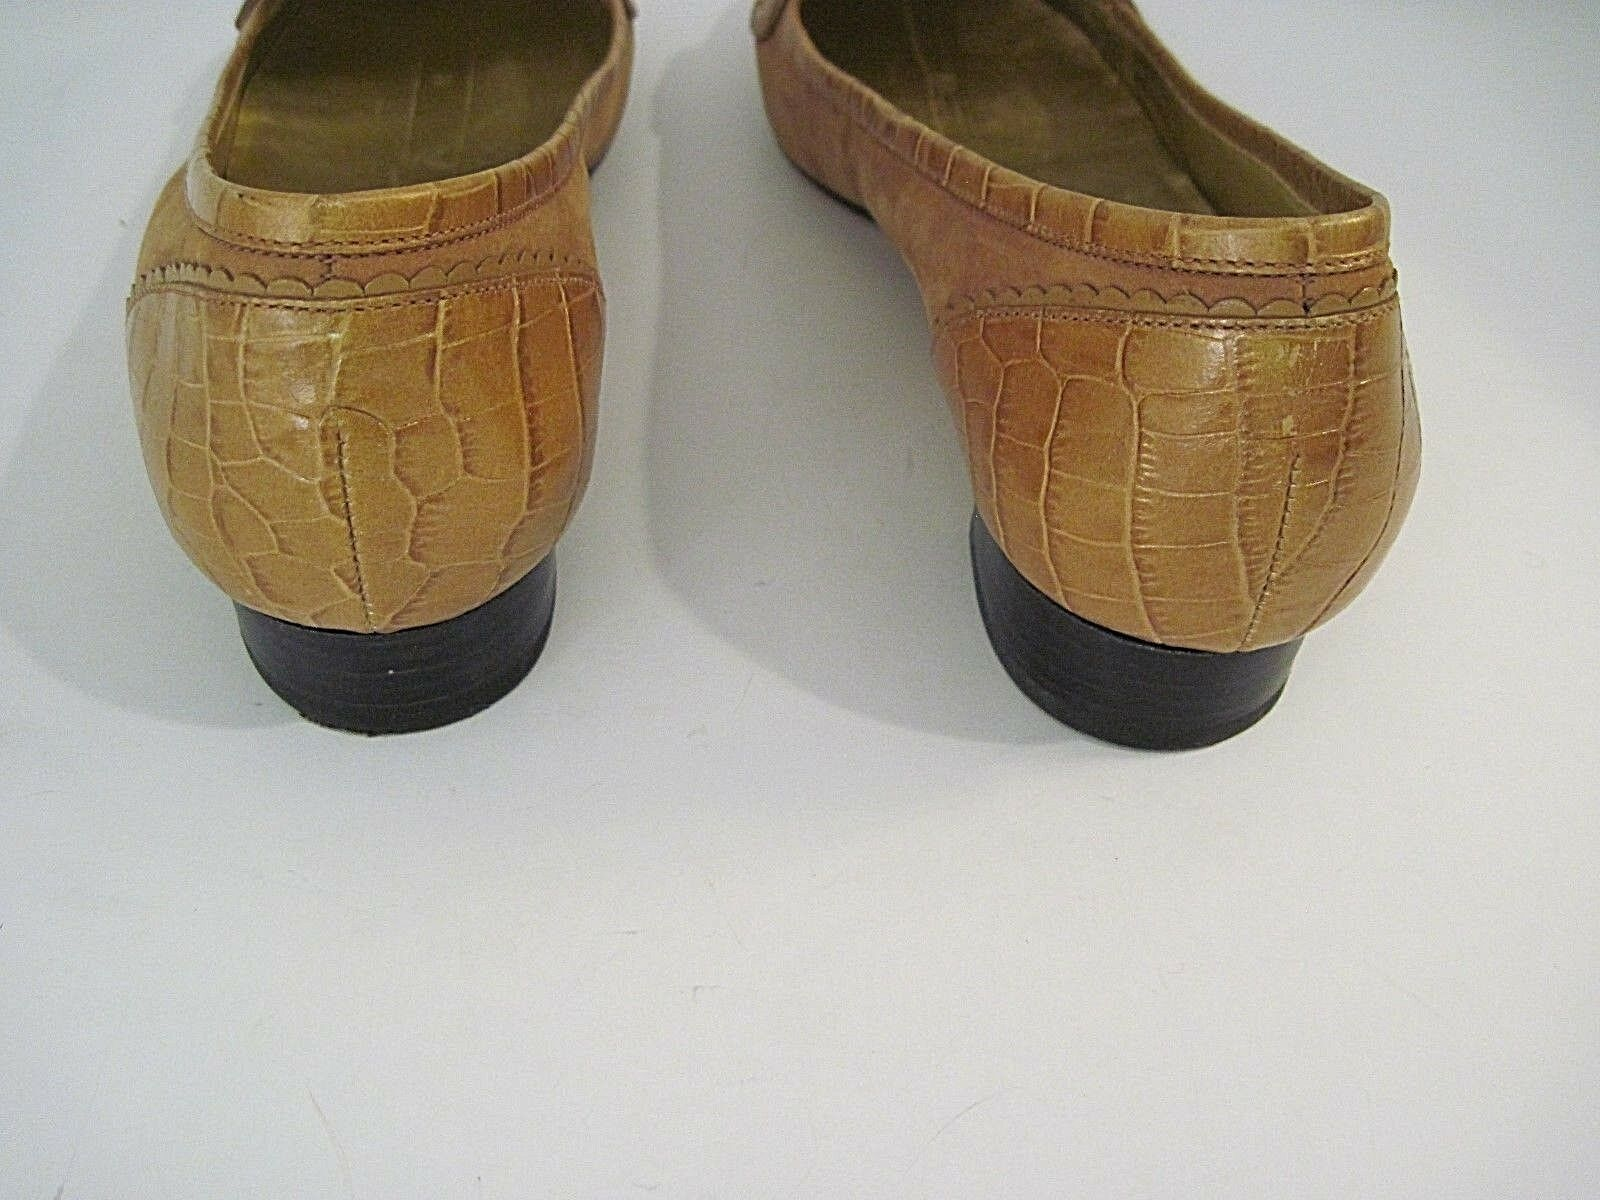 COLE HAAN BUCKLE BROWN LEATHER SUEDE ALLIGATOR CROC GOLD BUCKLE HAAN SHOES SIZE 7B f3c2ec